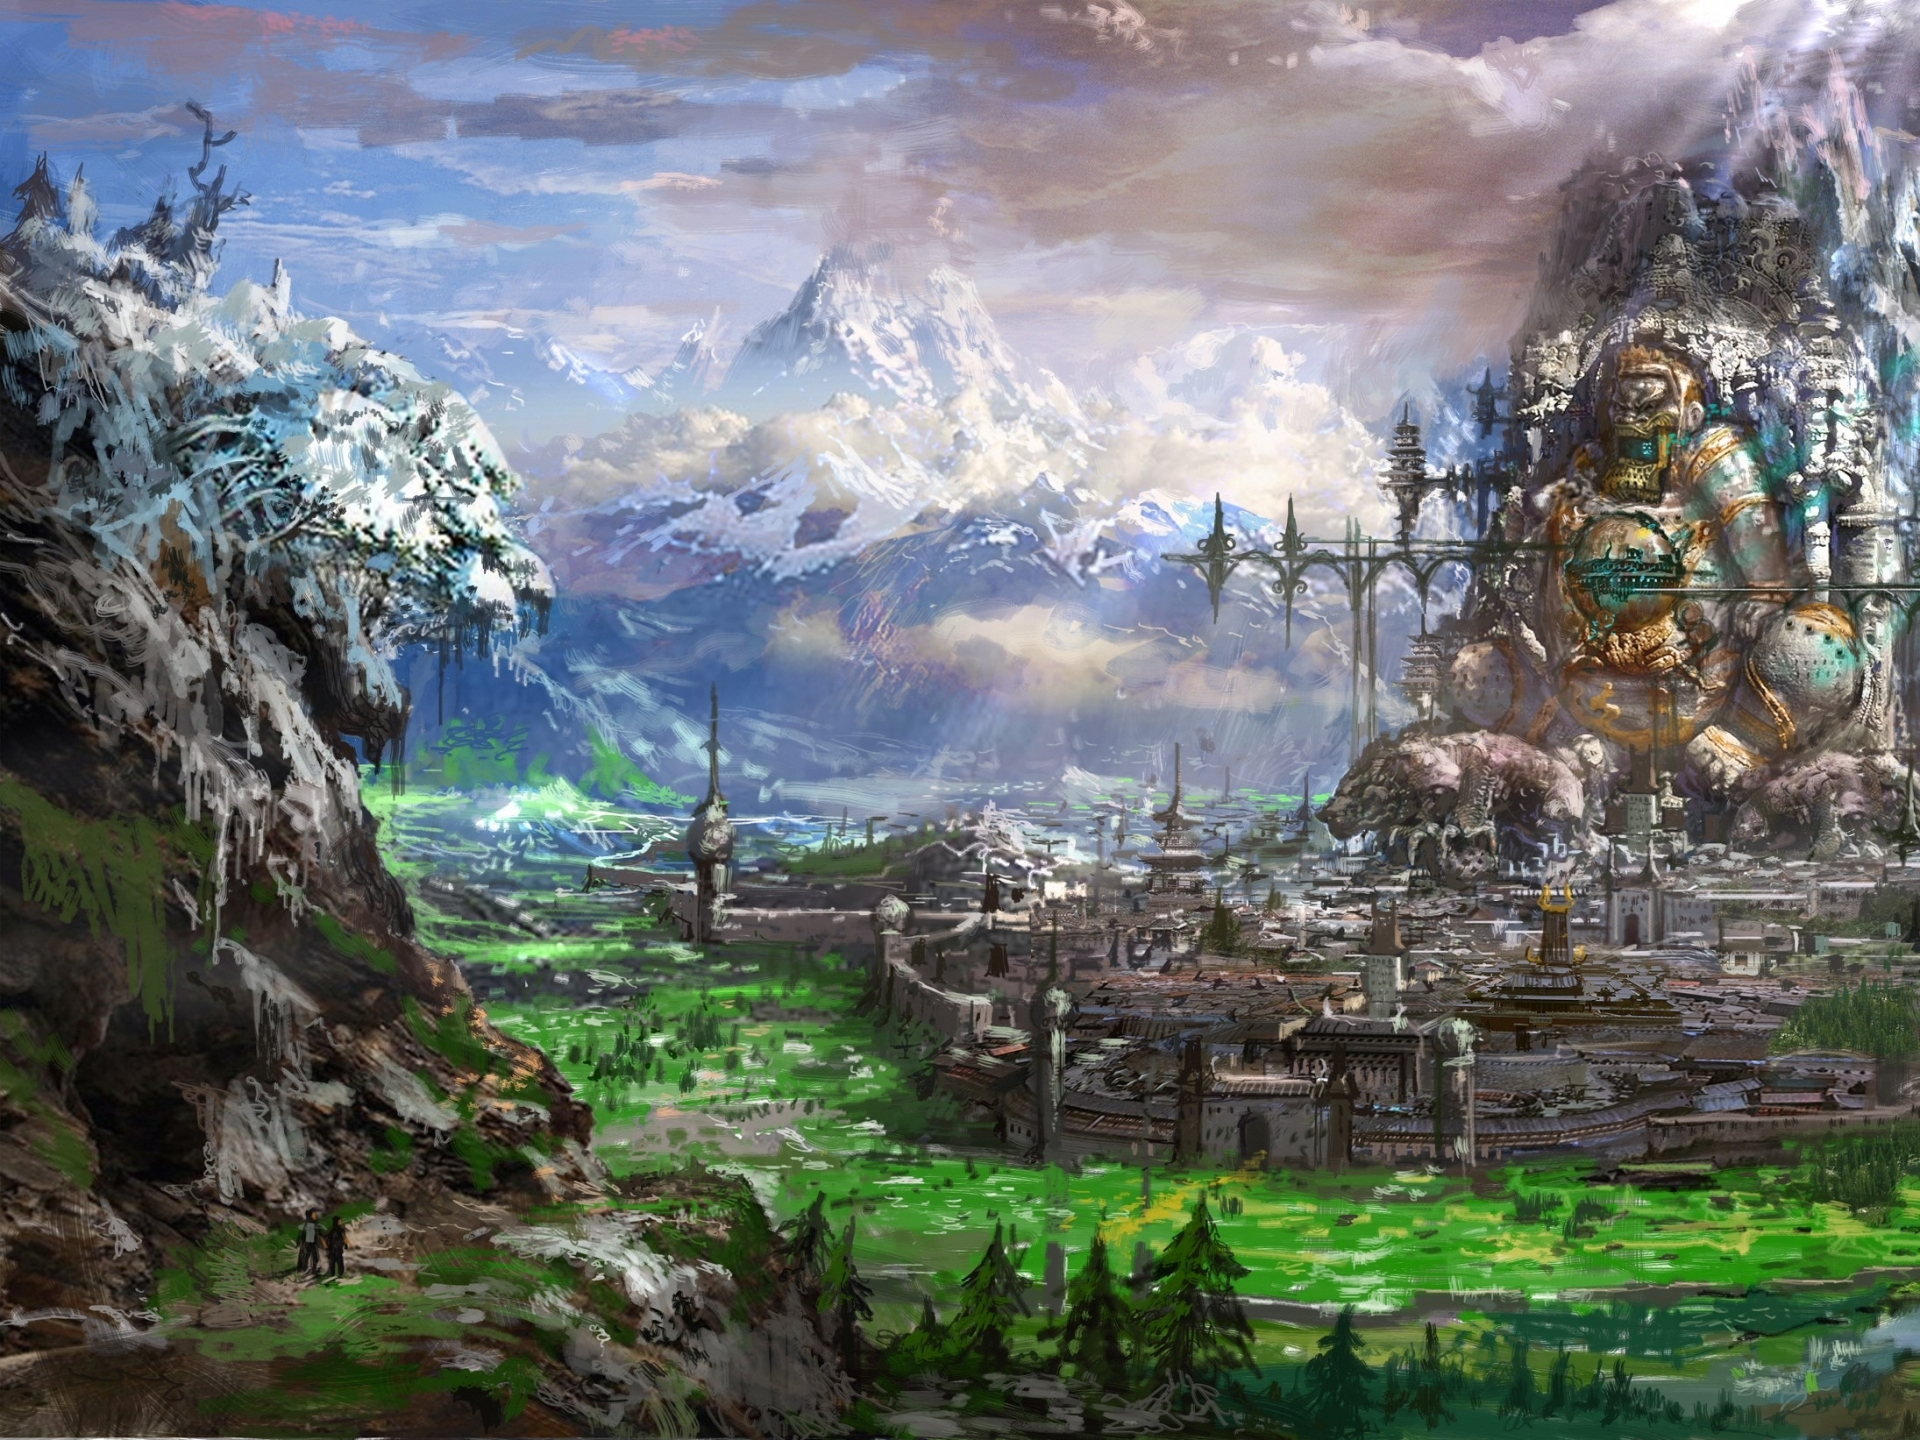 Blade And Soul Wallpaper: Blade And Soul Fantasy Cities Wallpaper